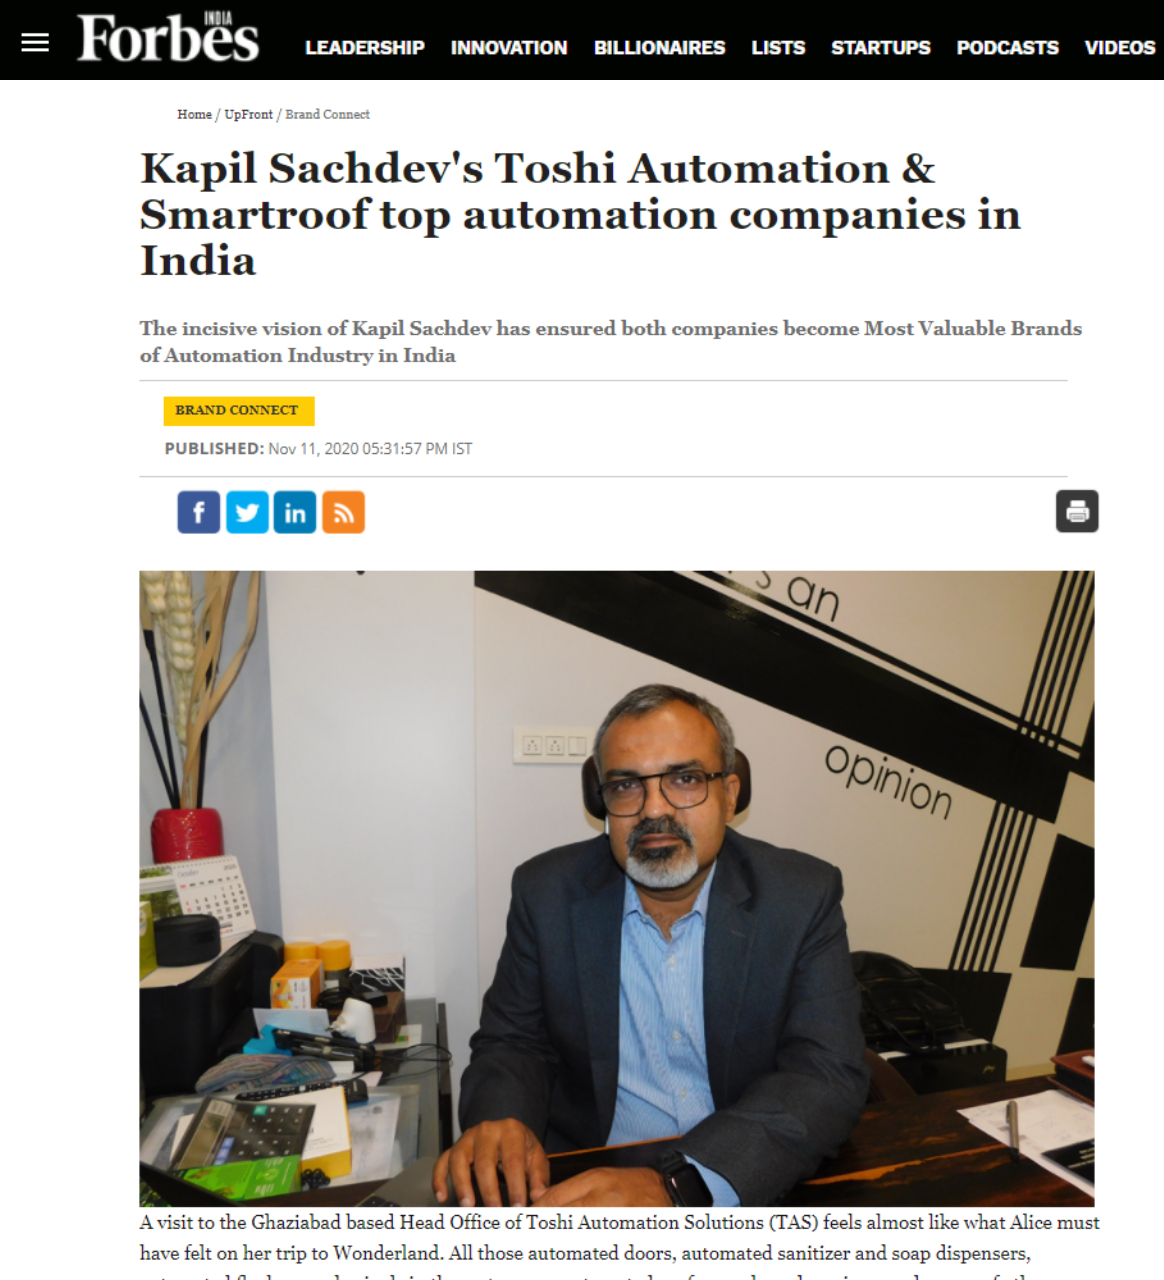 Forbes published an article -2020